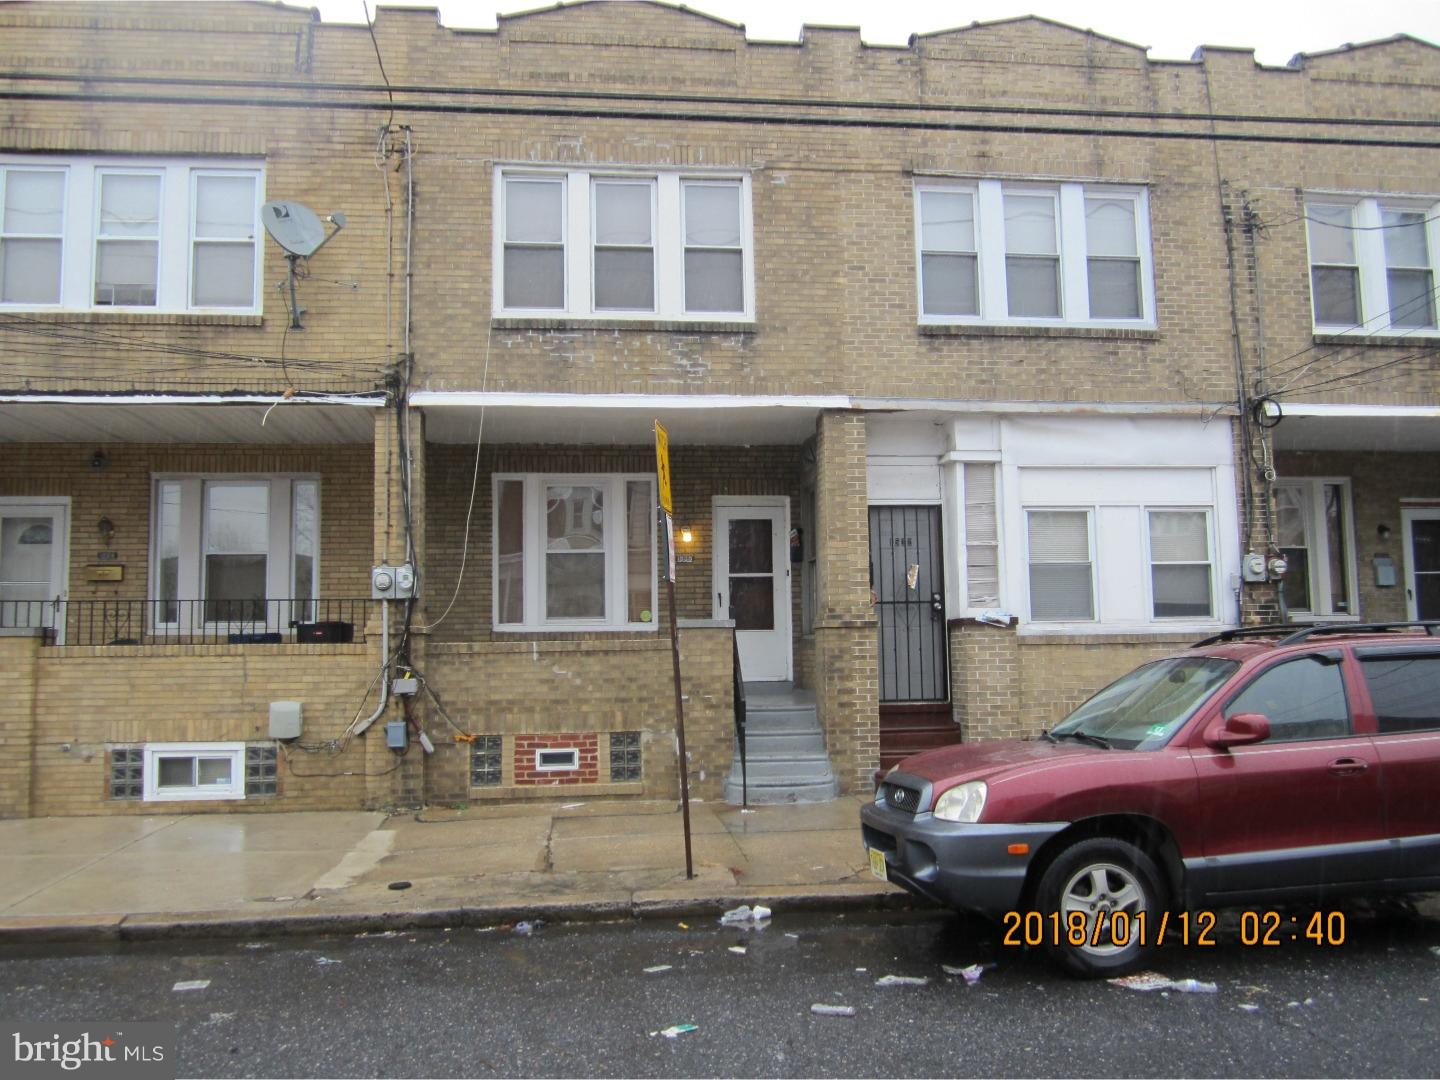 1530 S 10th St, Camden, NJ 08104